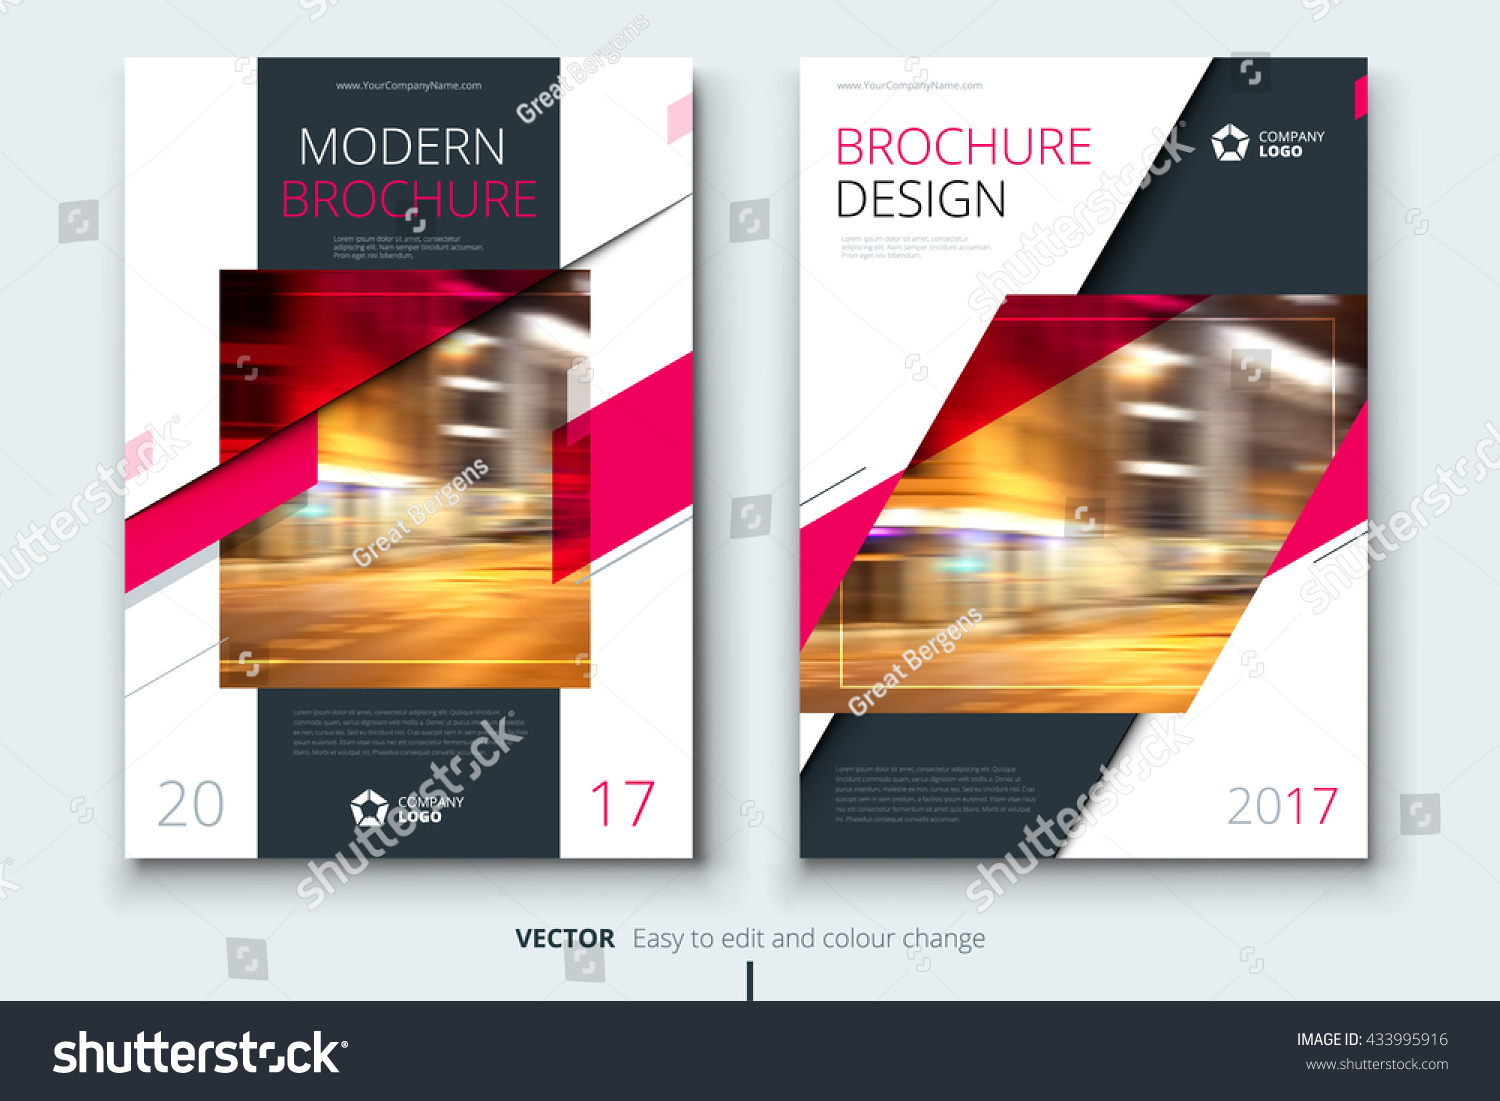 Pink corporative business annual report brochure stock for Modern brochure design templates